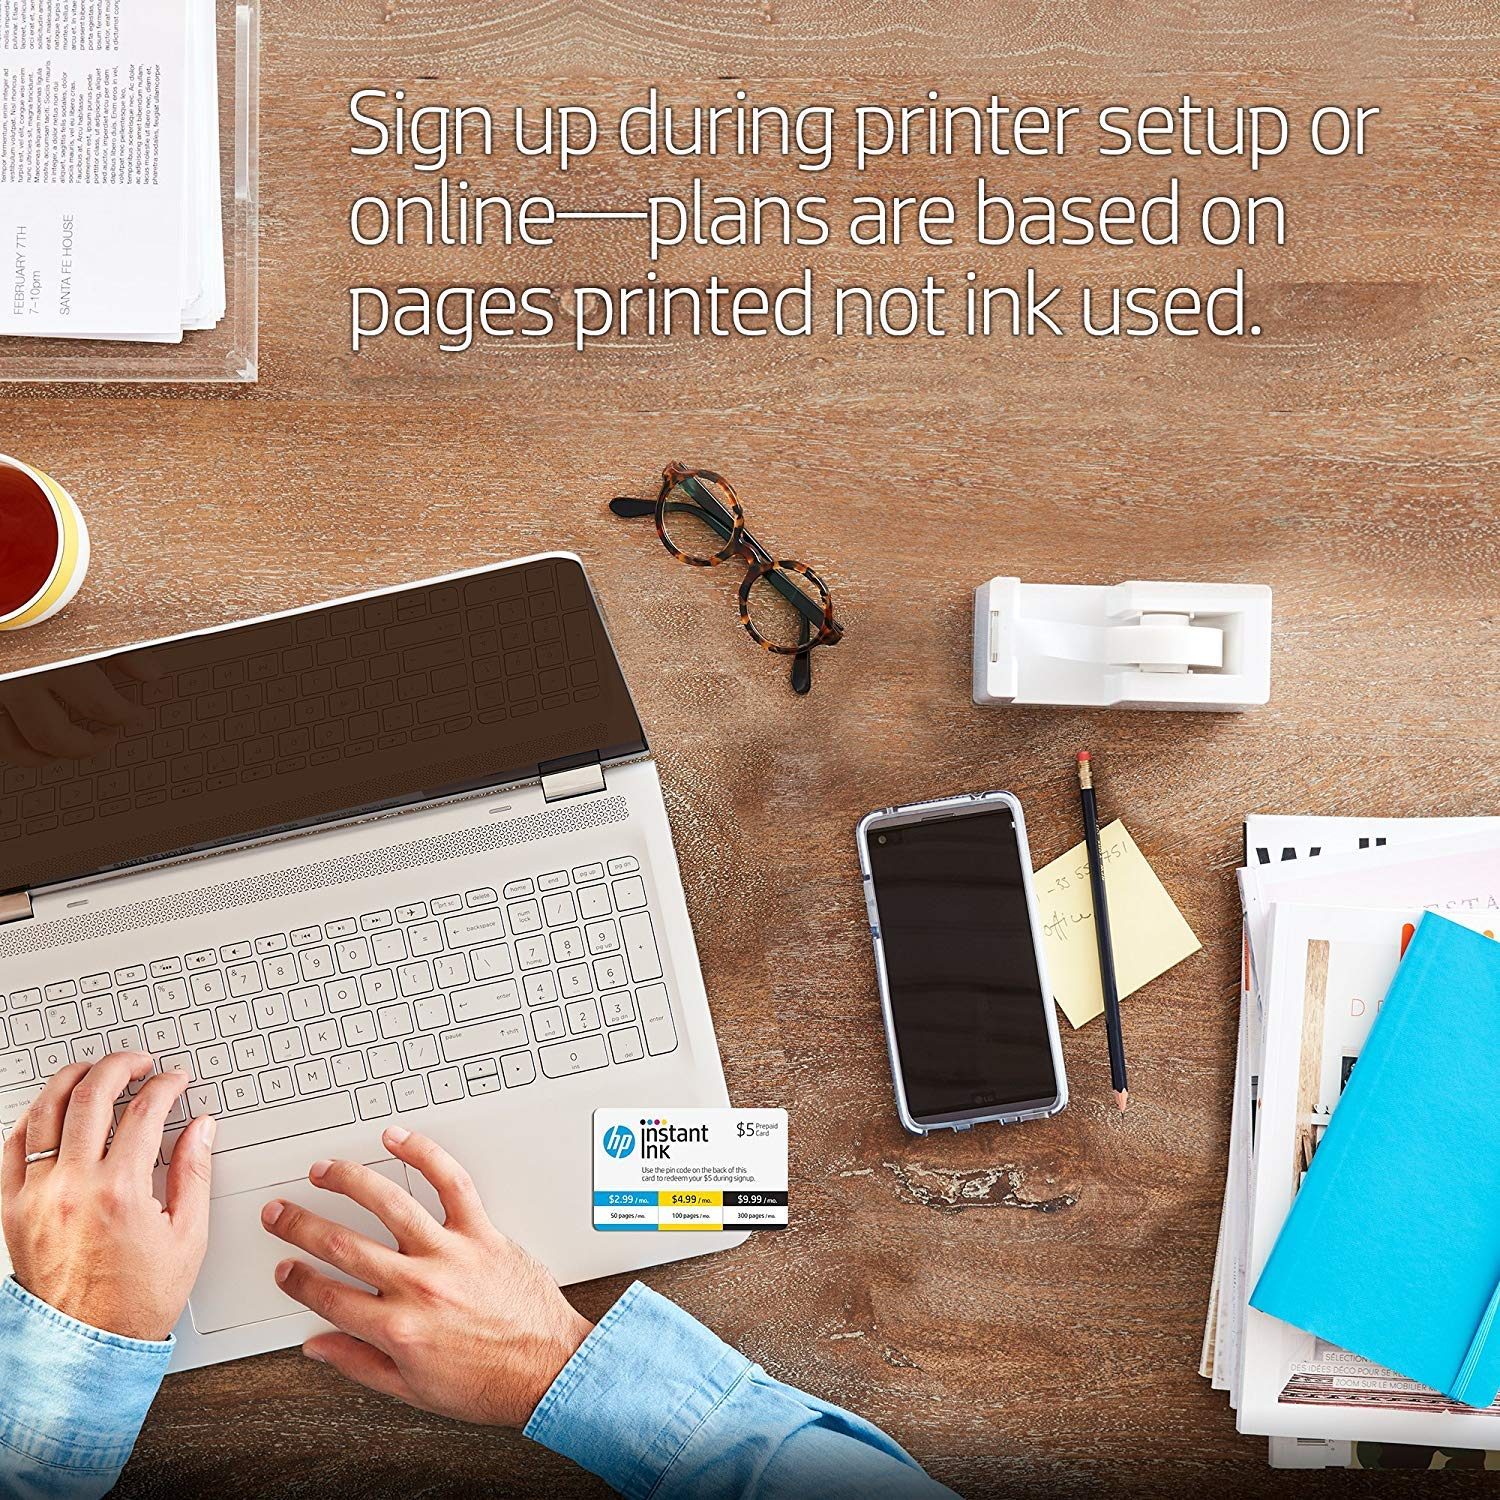 HP OfficeJet 3830 All-in-One Wireless Printer with Mobile Printing (K7V40A) and Instant Ink Prepaid Card for 50 100 300 Page per Month Plans (3HZ65AN) by HP (Image #4)